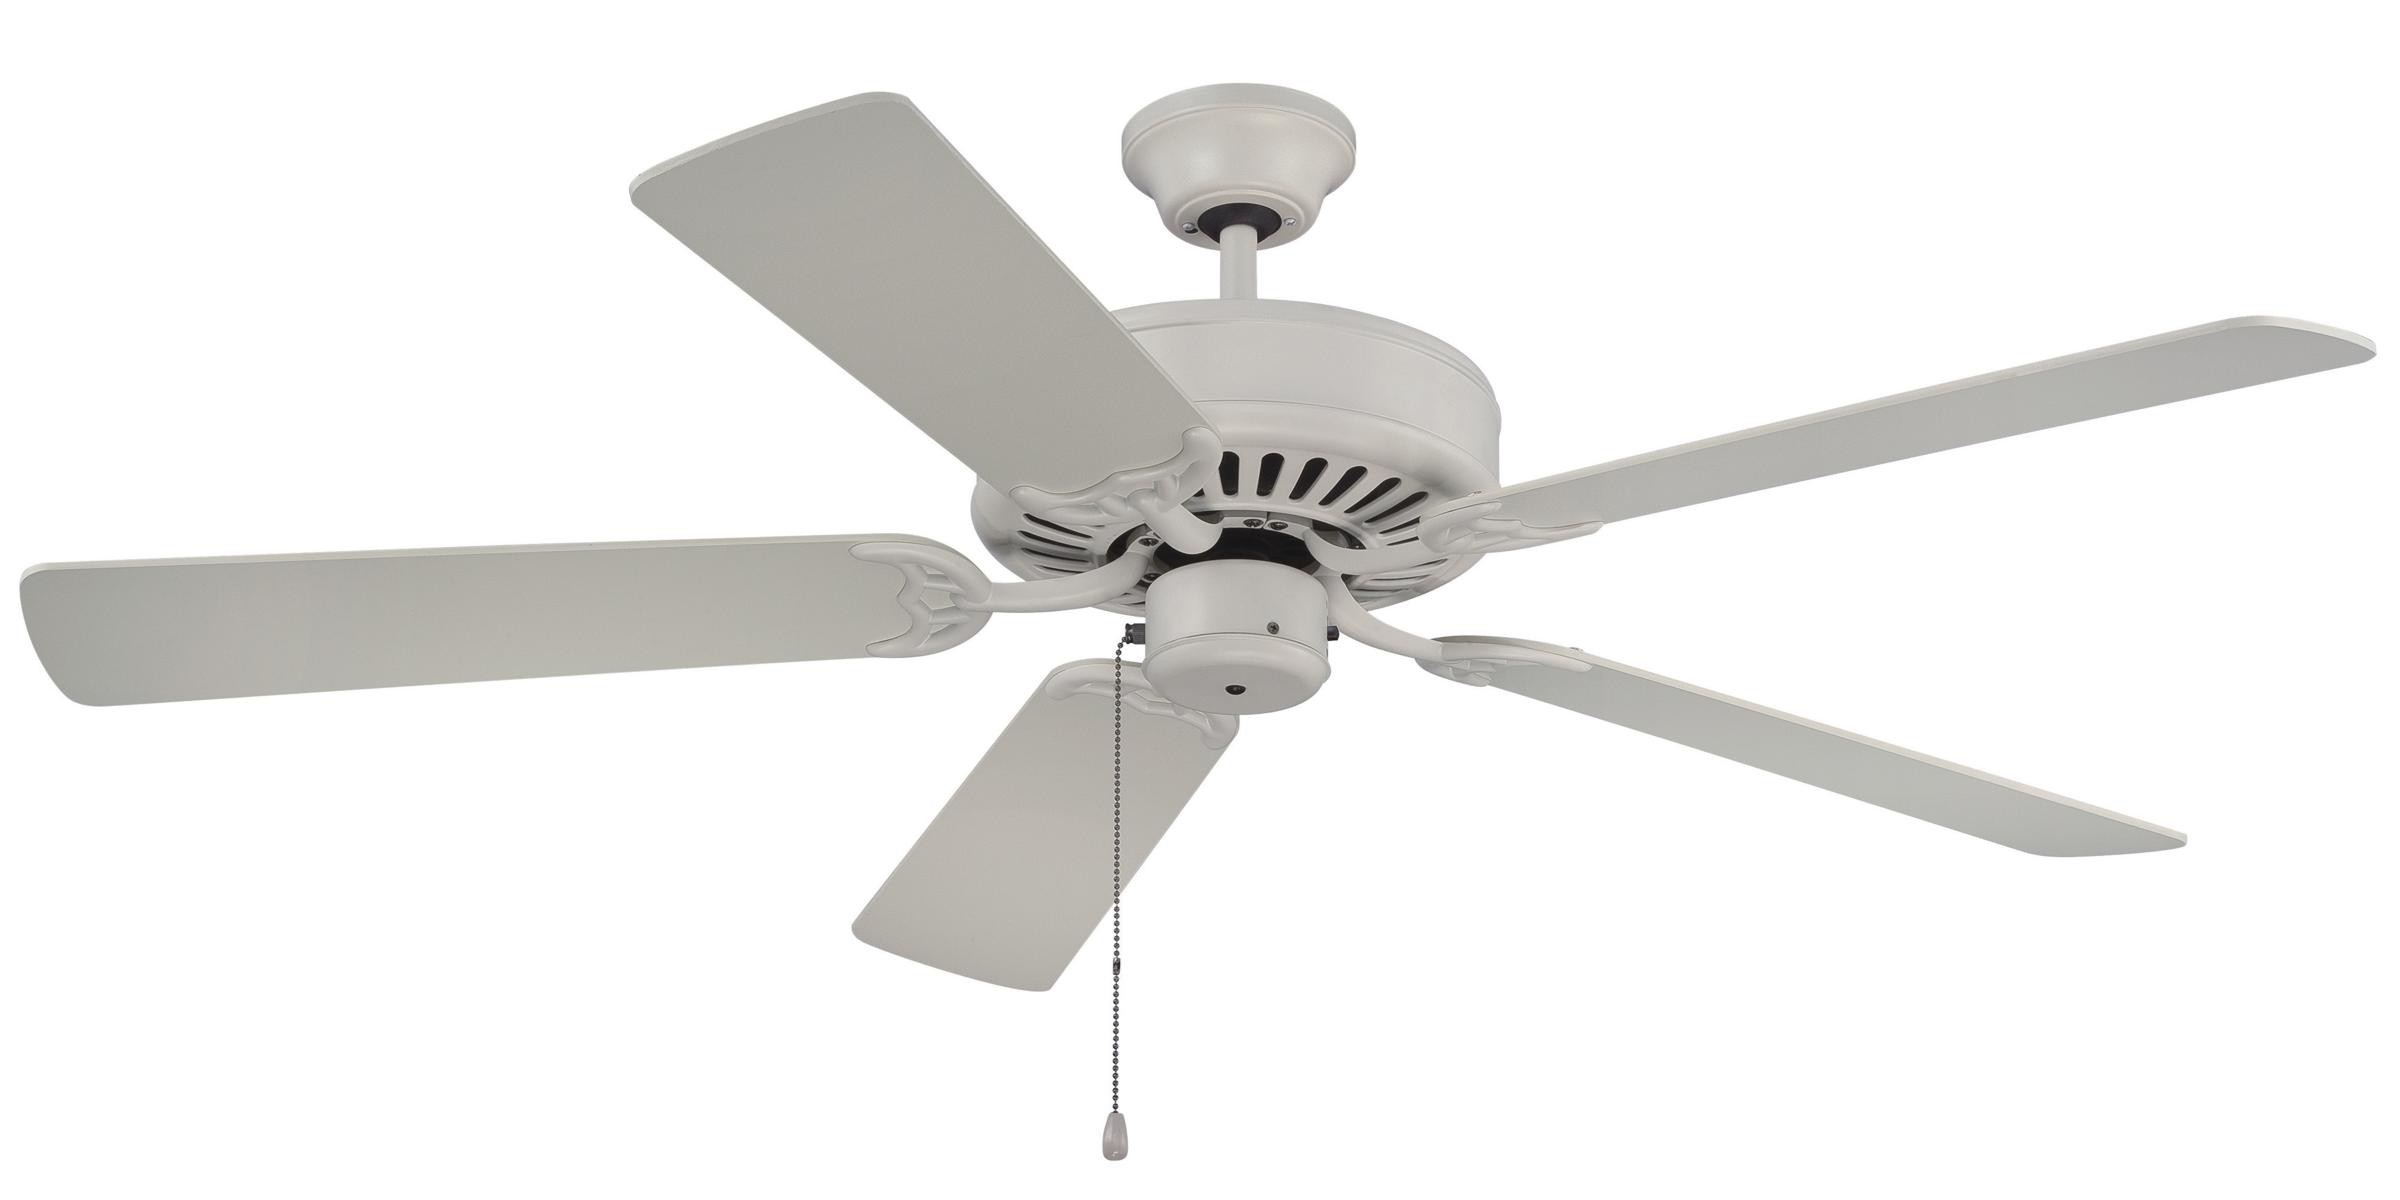 Newest Craftmade Pro Builder Ceiling Fan Model C52aw In Antique White Within Craftmade Outdoor Ceiling Fans Craftmade (View 7 of 20)